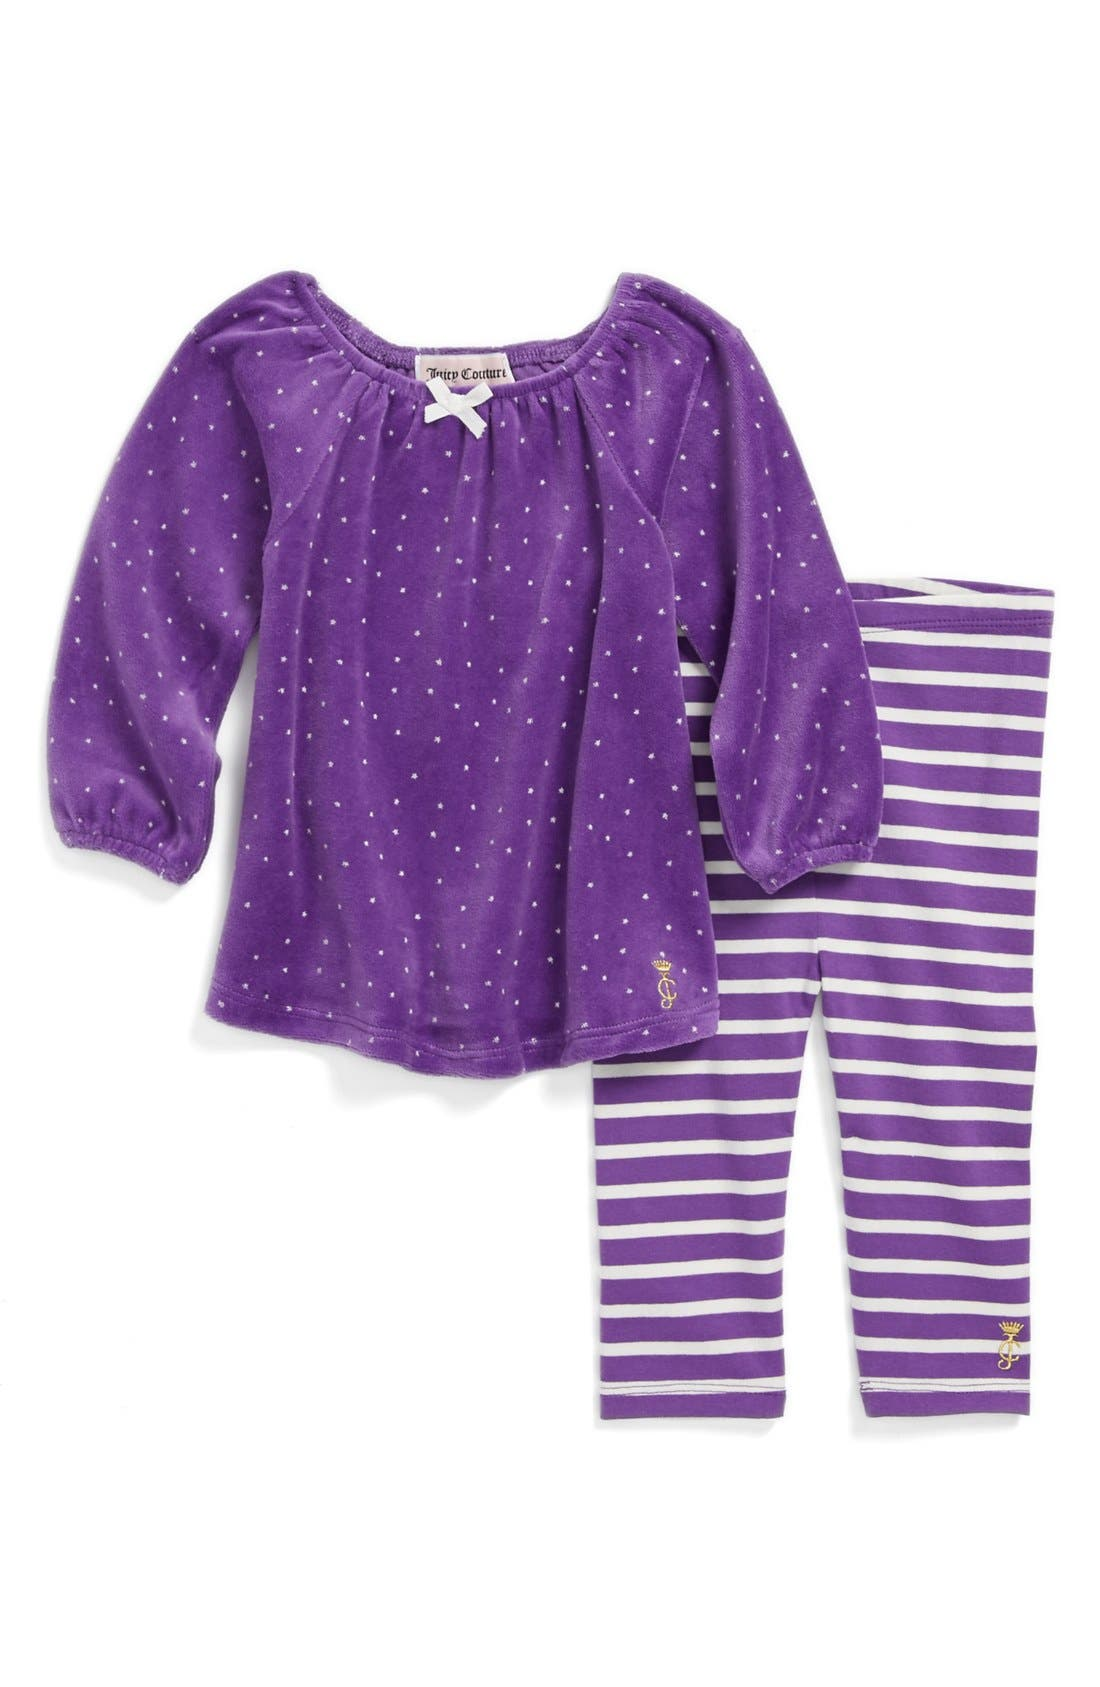 Main Image - Juicy Couture Top & Leggings (Baby Girls)